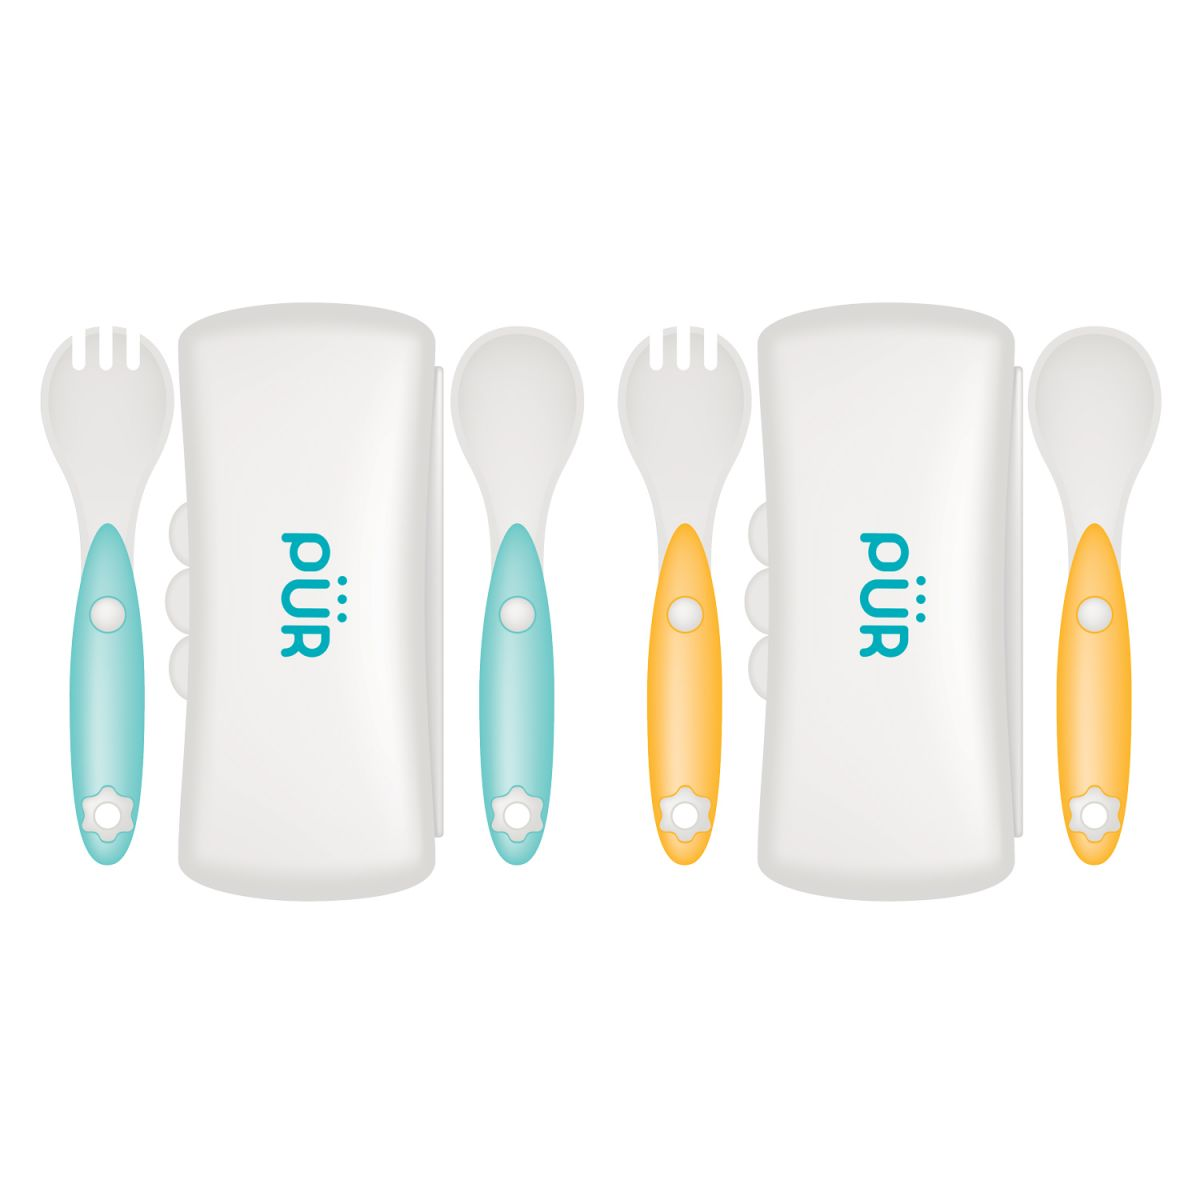 Pur Cutlery set with travel case (5402)